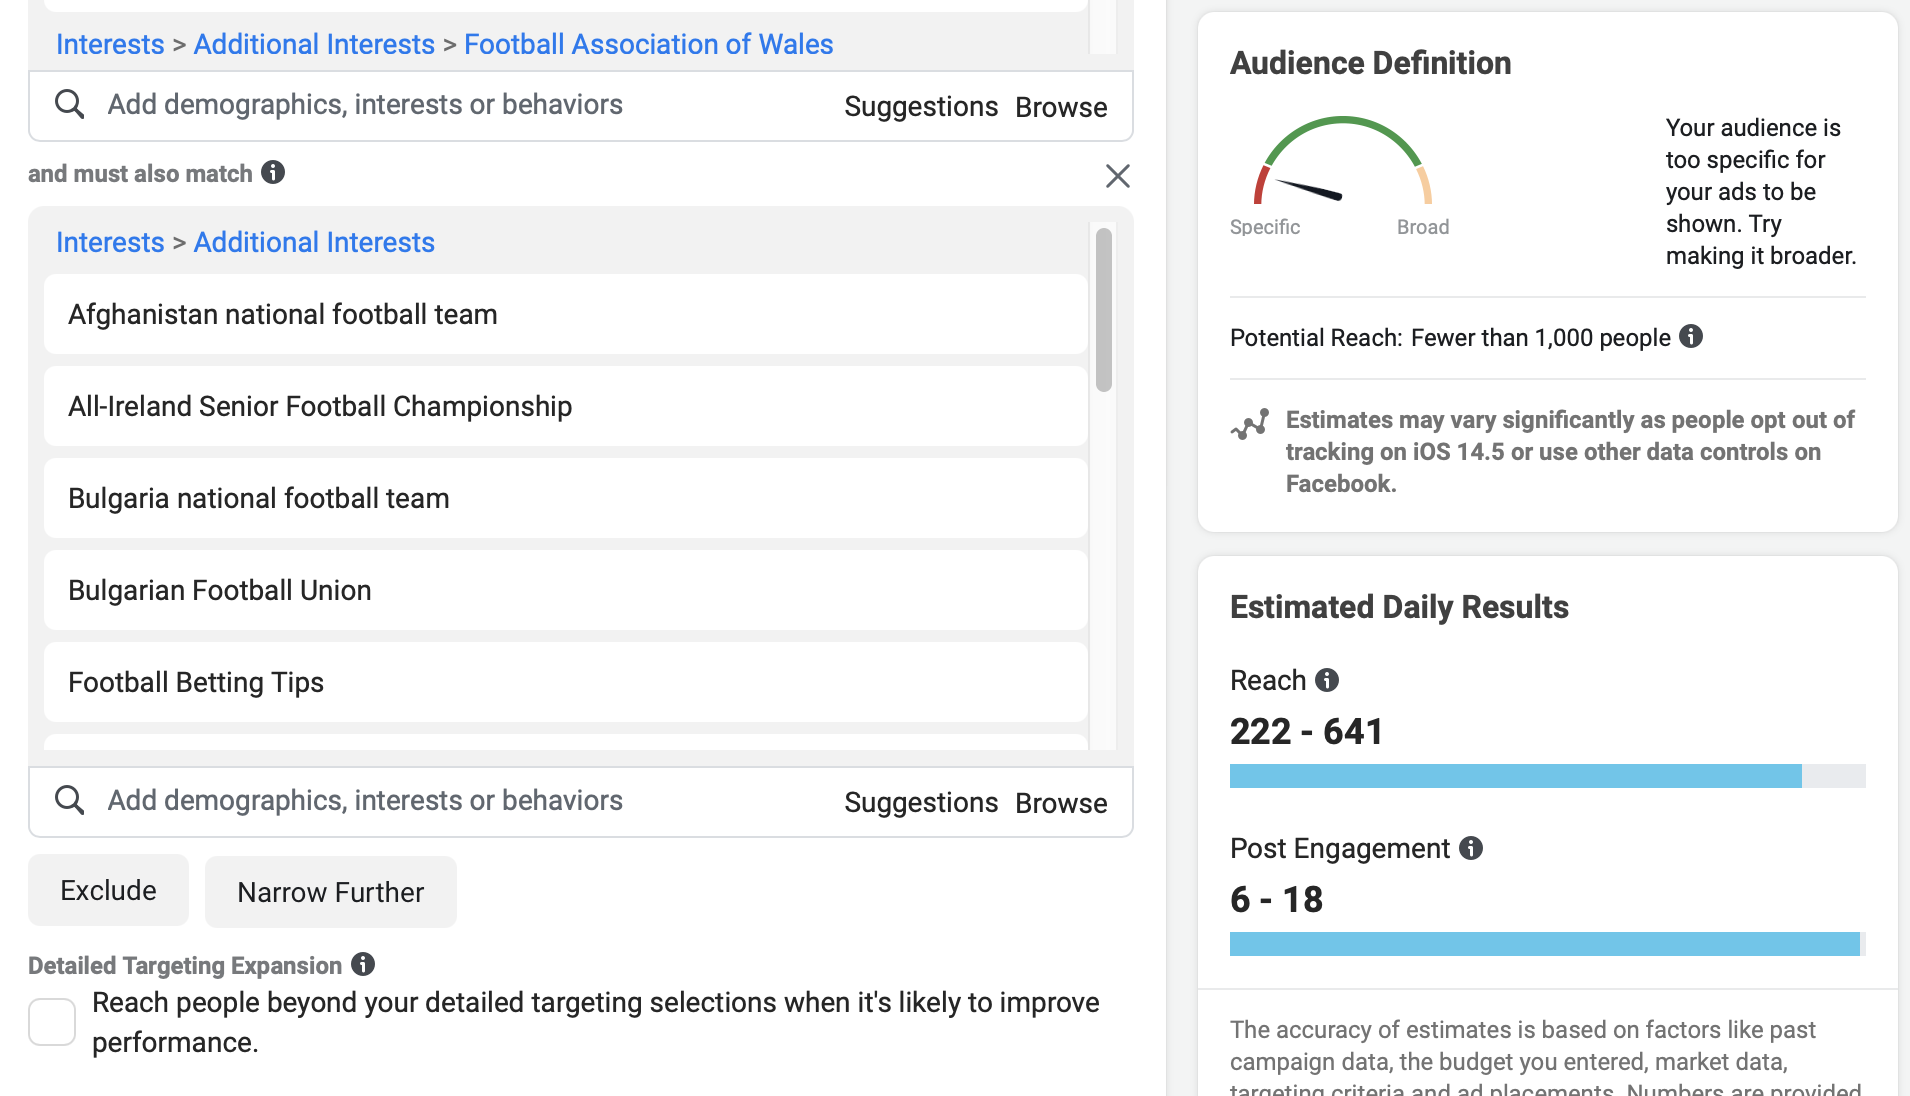 interestinsights interests added to narrow audience